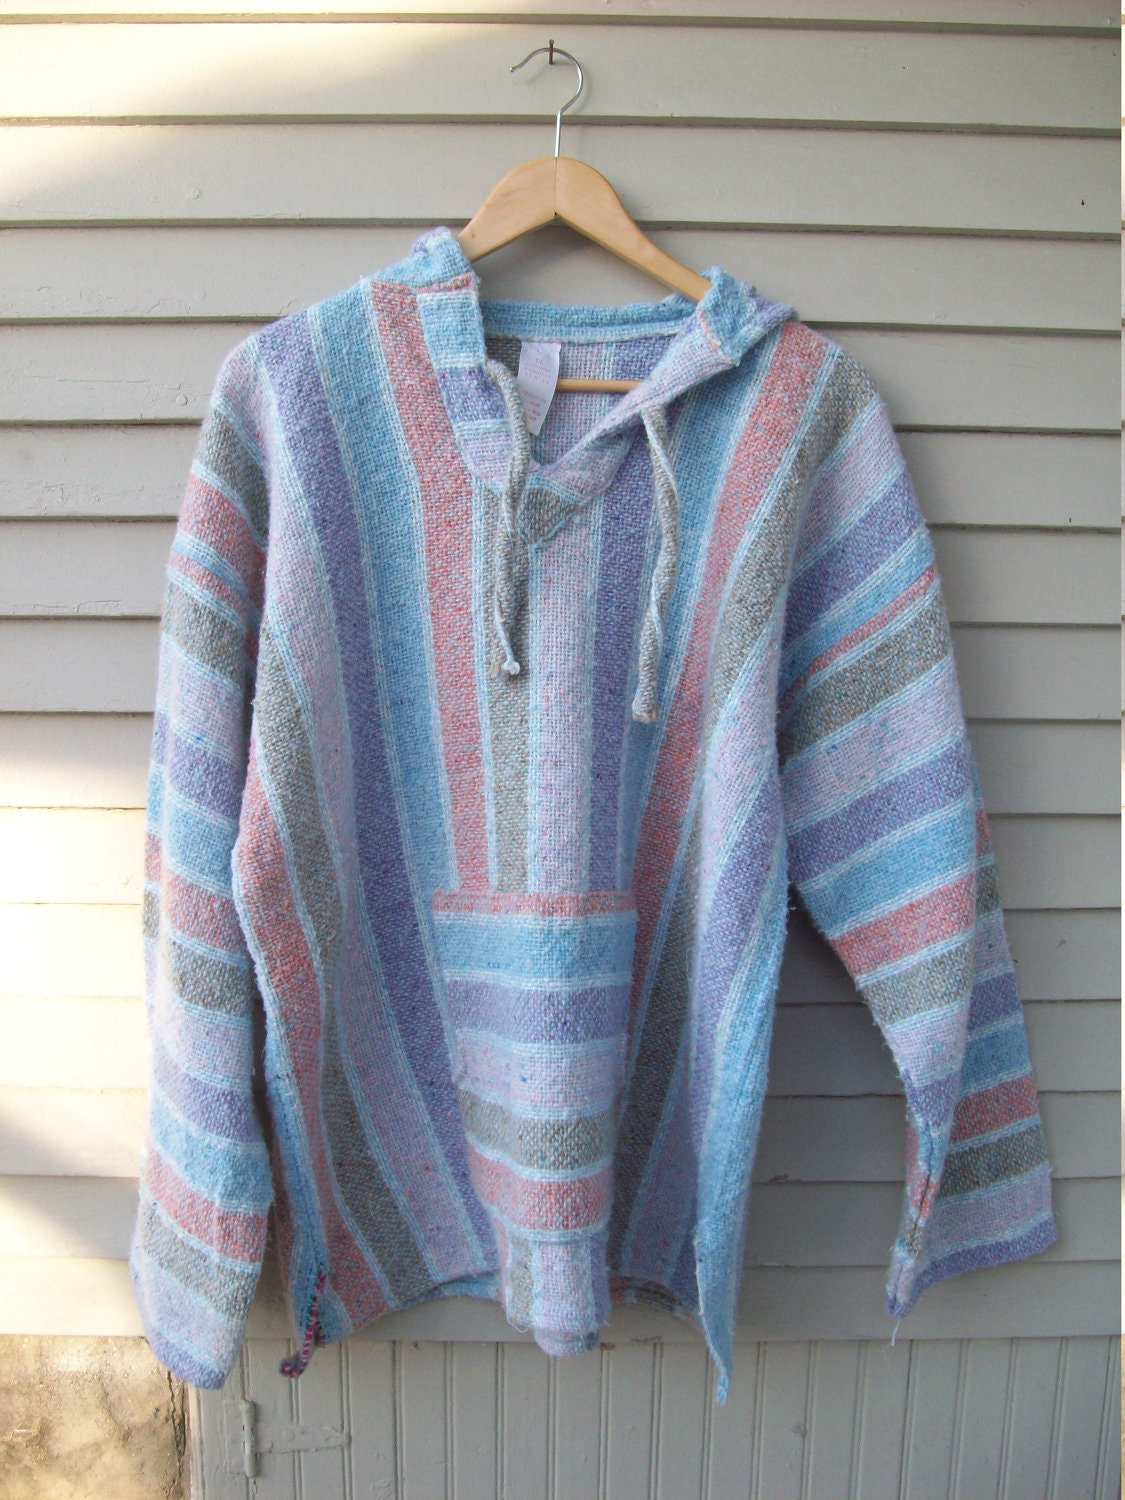 Oversized Pastel Baja Hoodie From Mexico